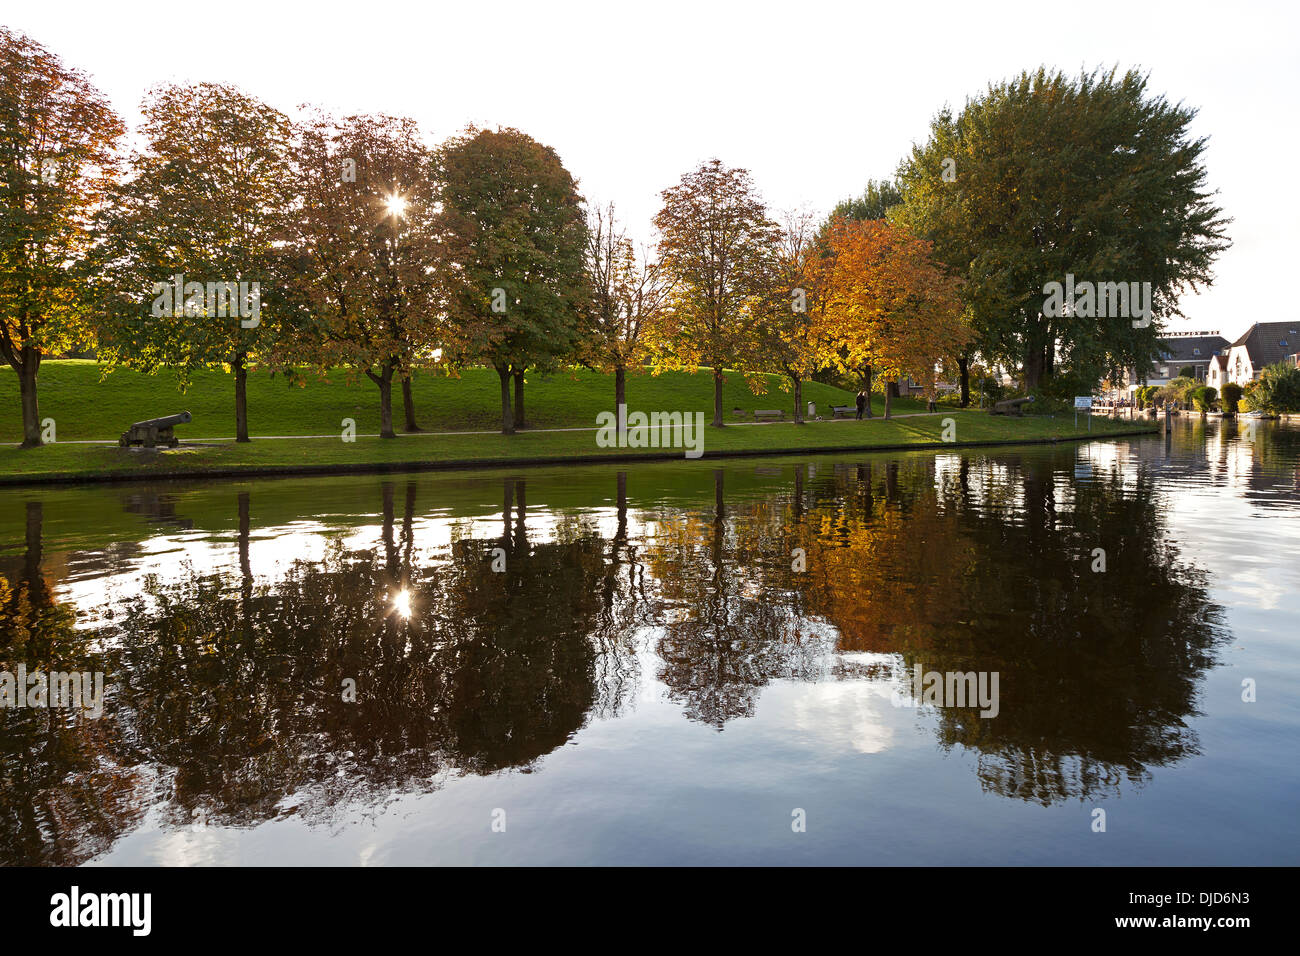 Ankerpark with historical canon in Leiden, The Netherlands - Stock Image